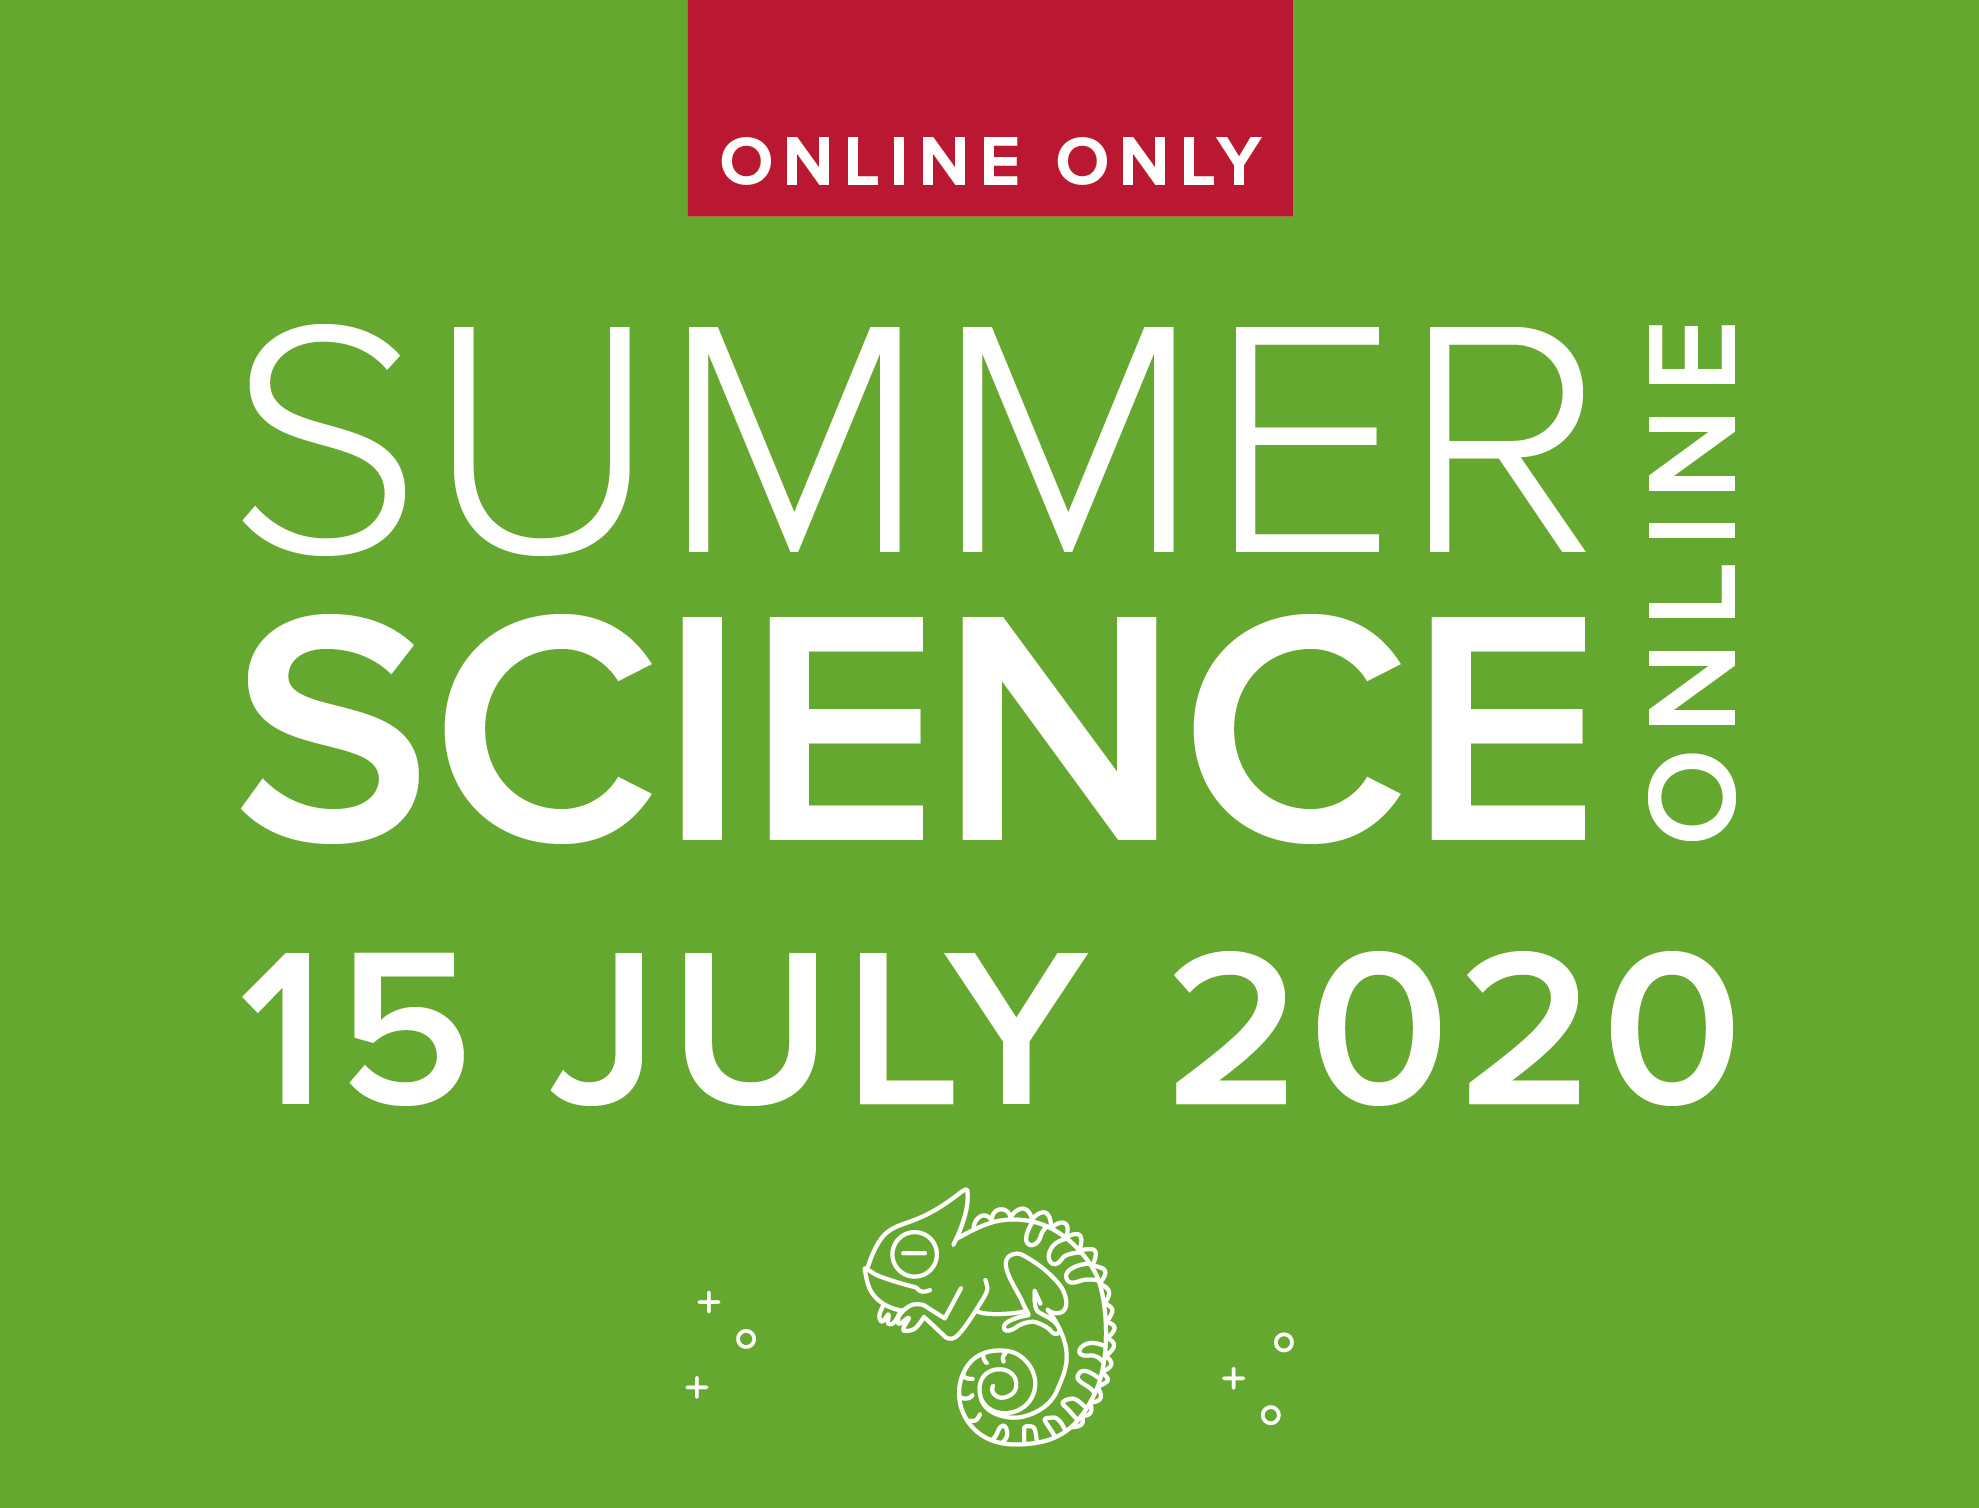 Summer Science Online 15 July 2020